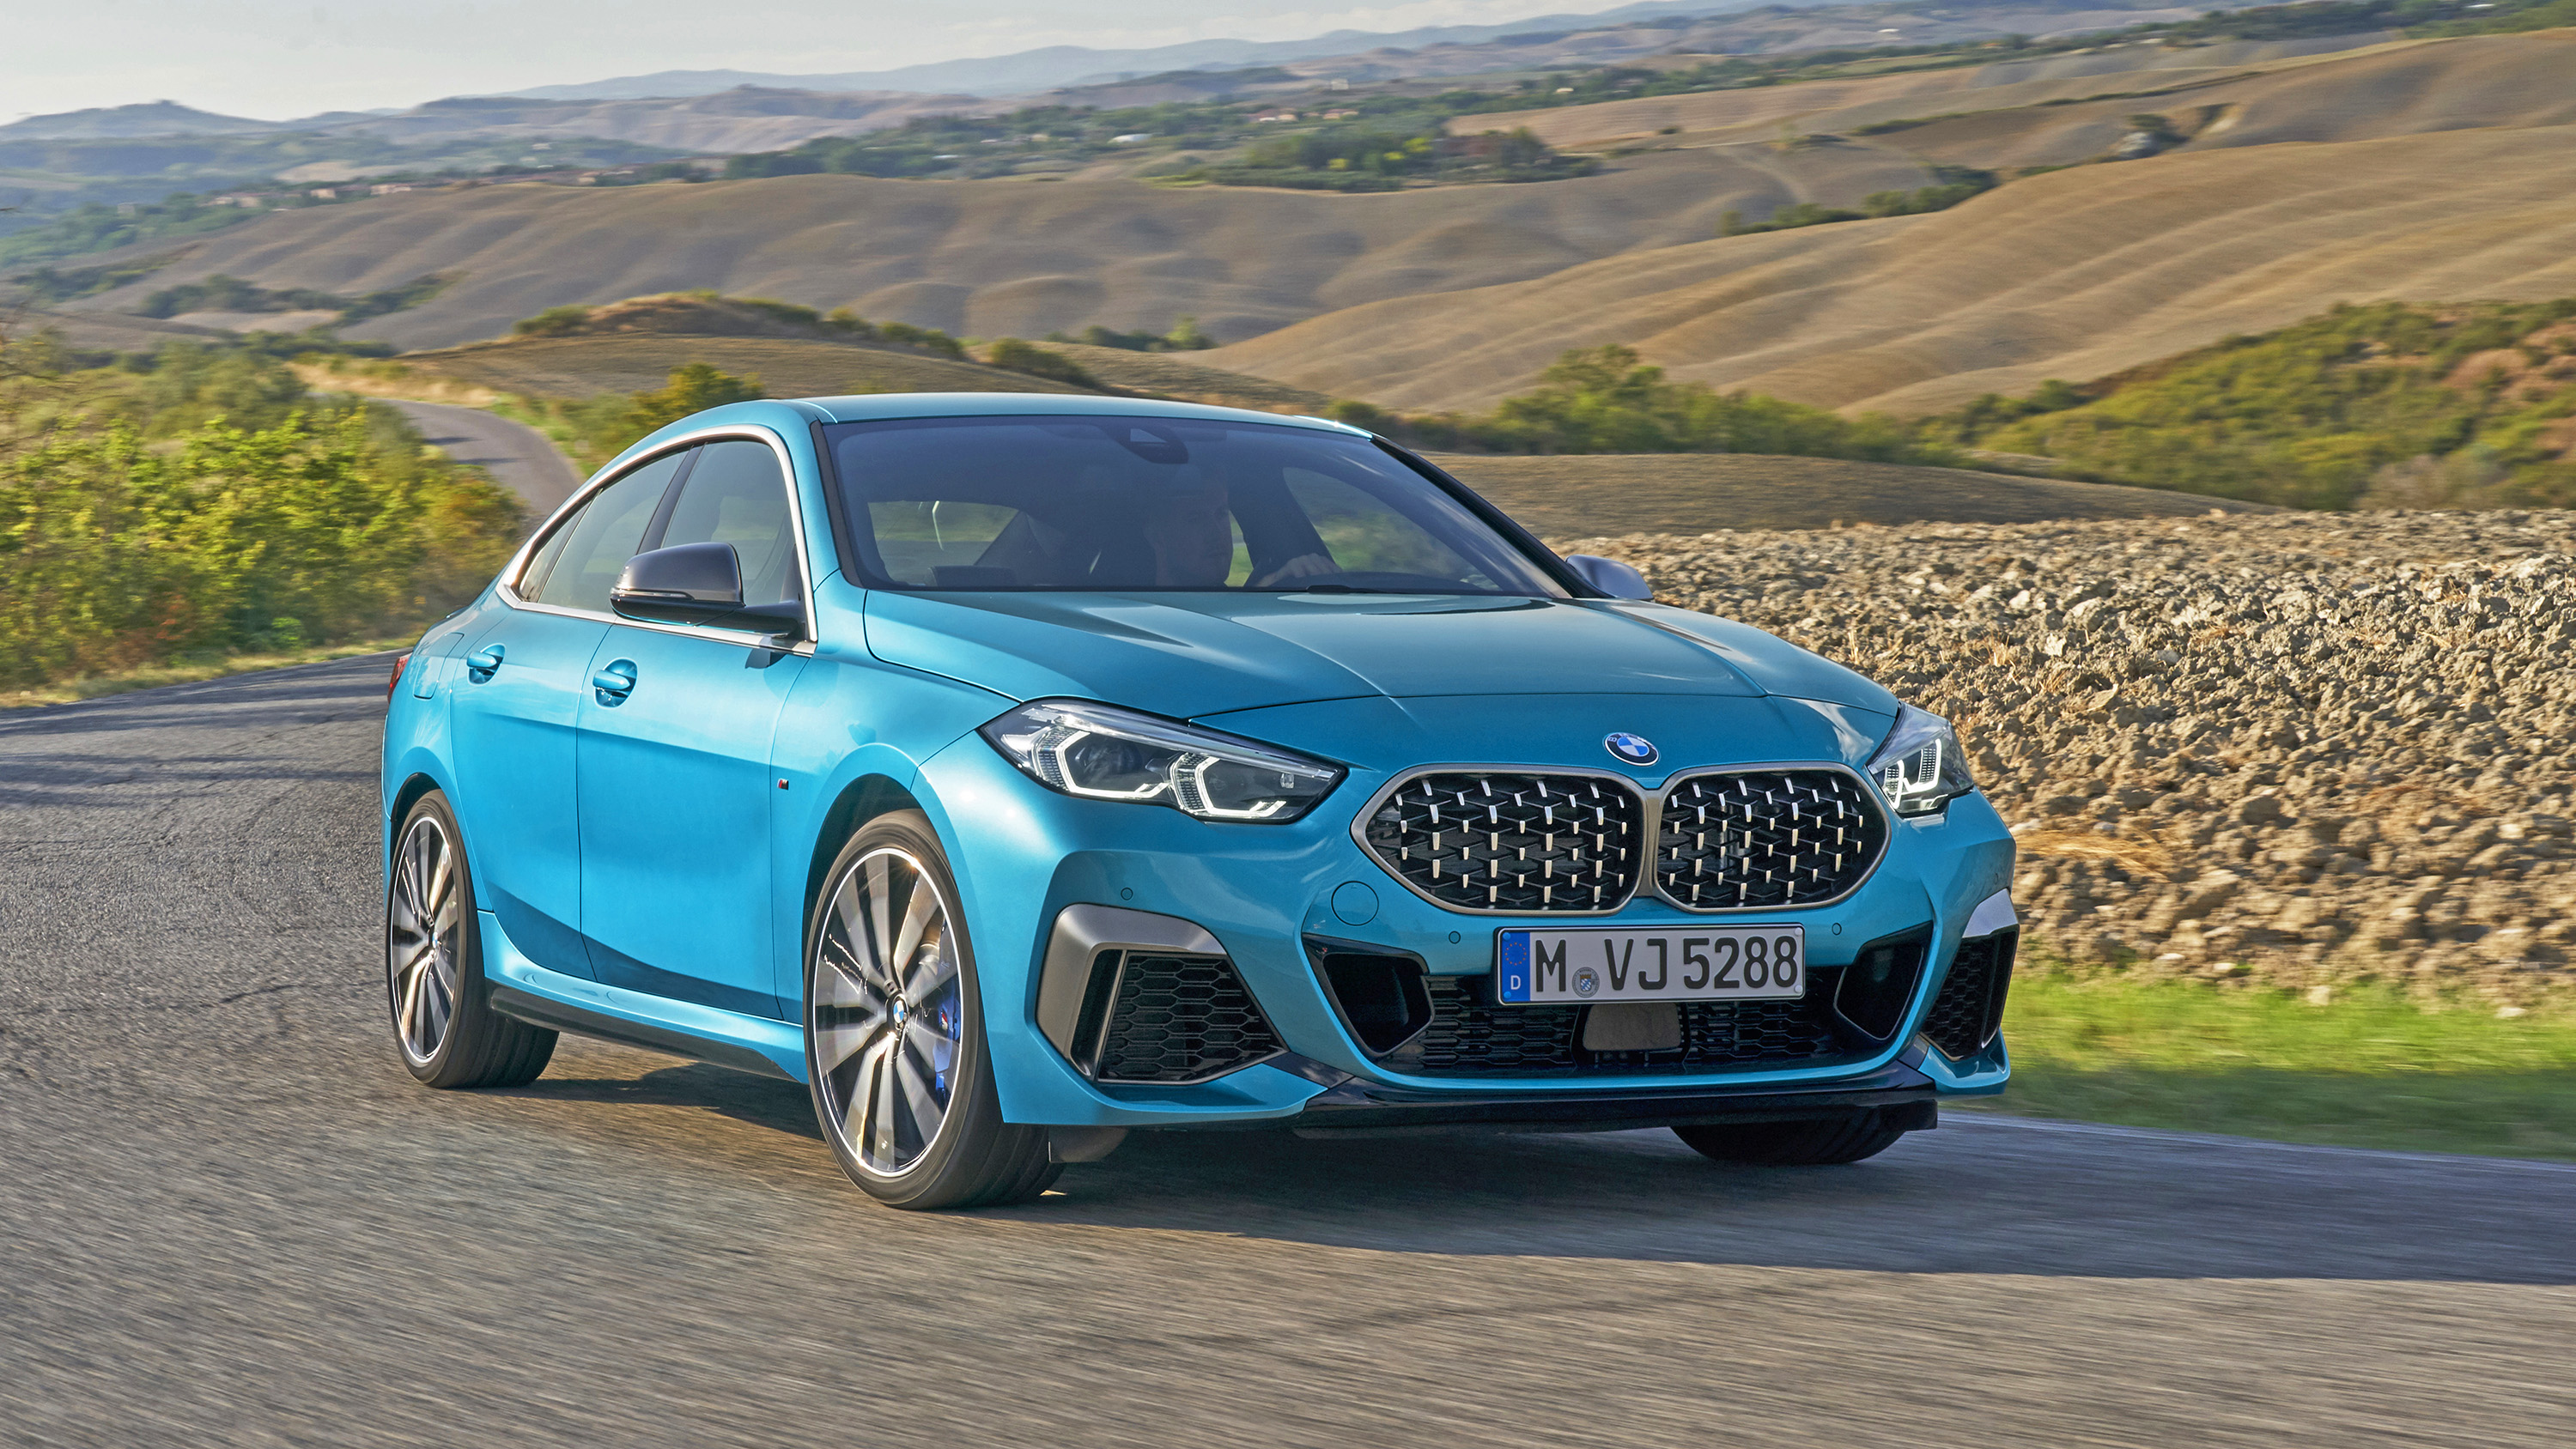 New Bmw 2 Series Gran Coupe Prices And Specifications Revealed Buyacar